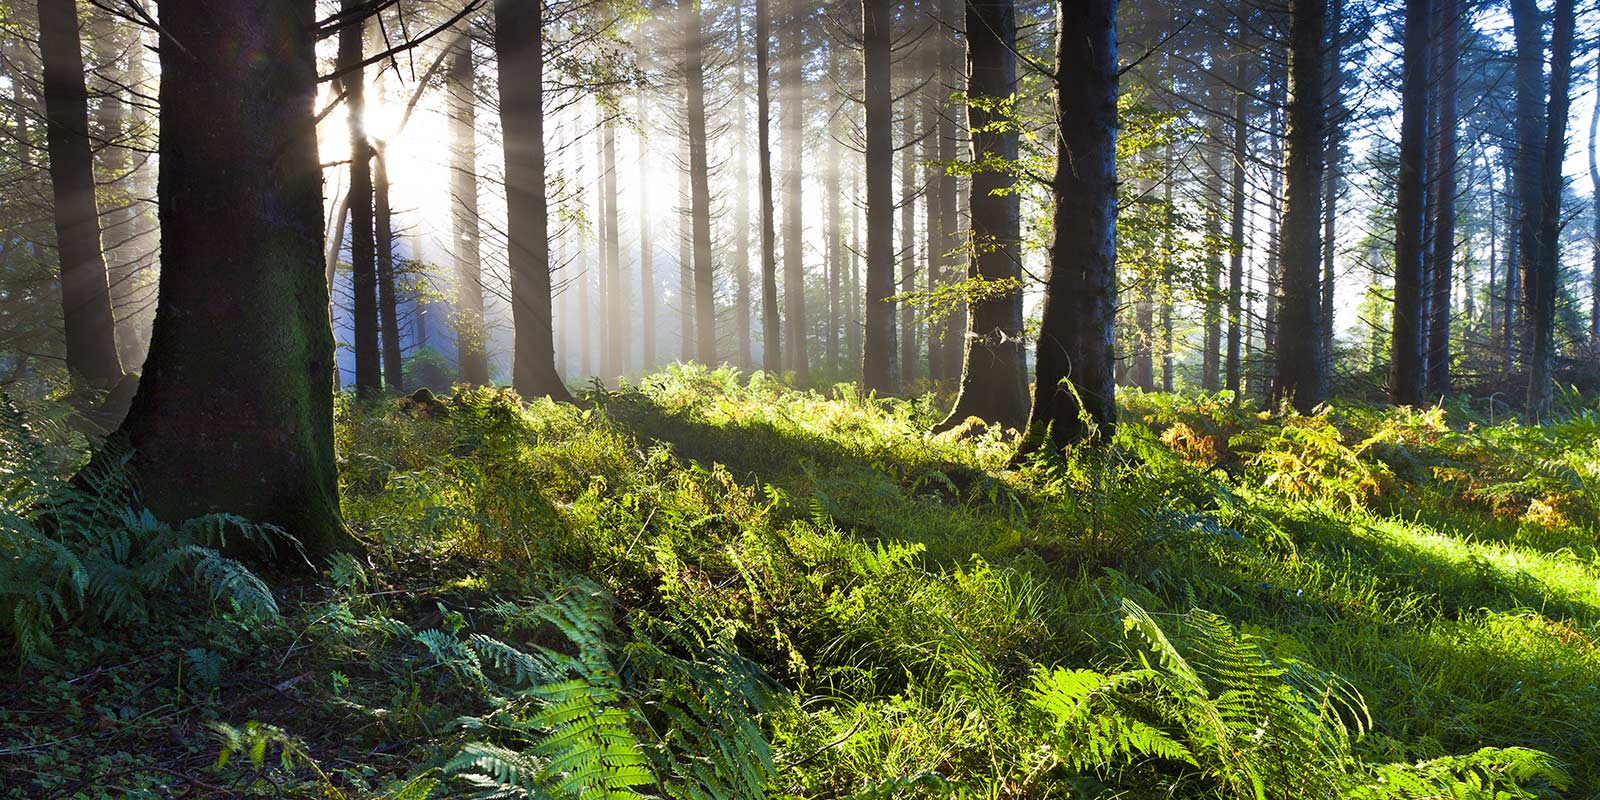 Timberland Property, Forest Land & Timberland For Sale ...